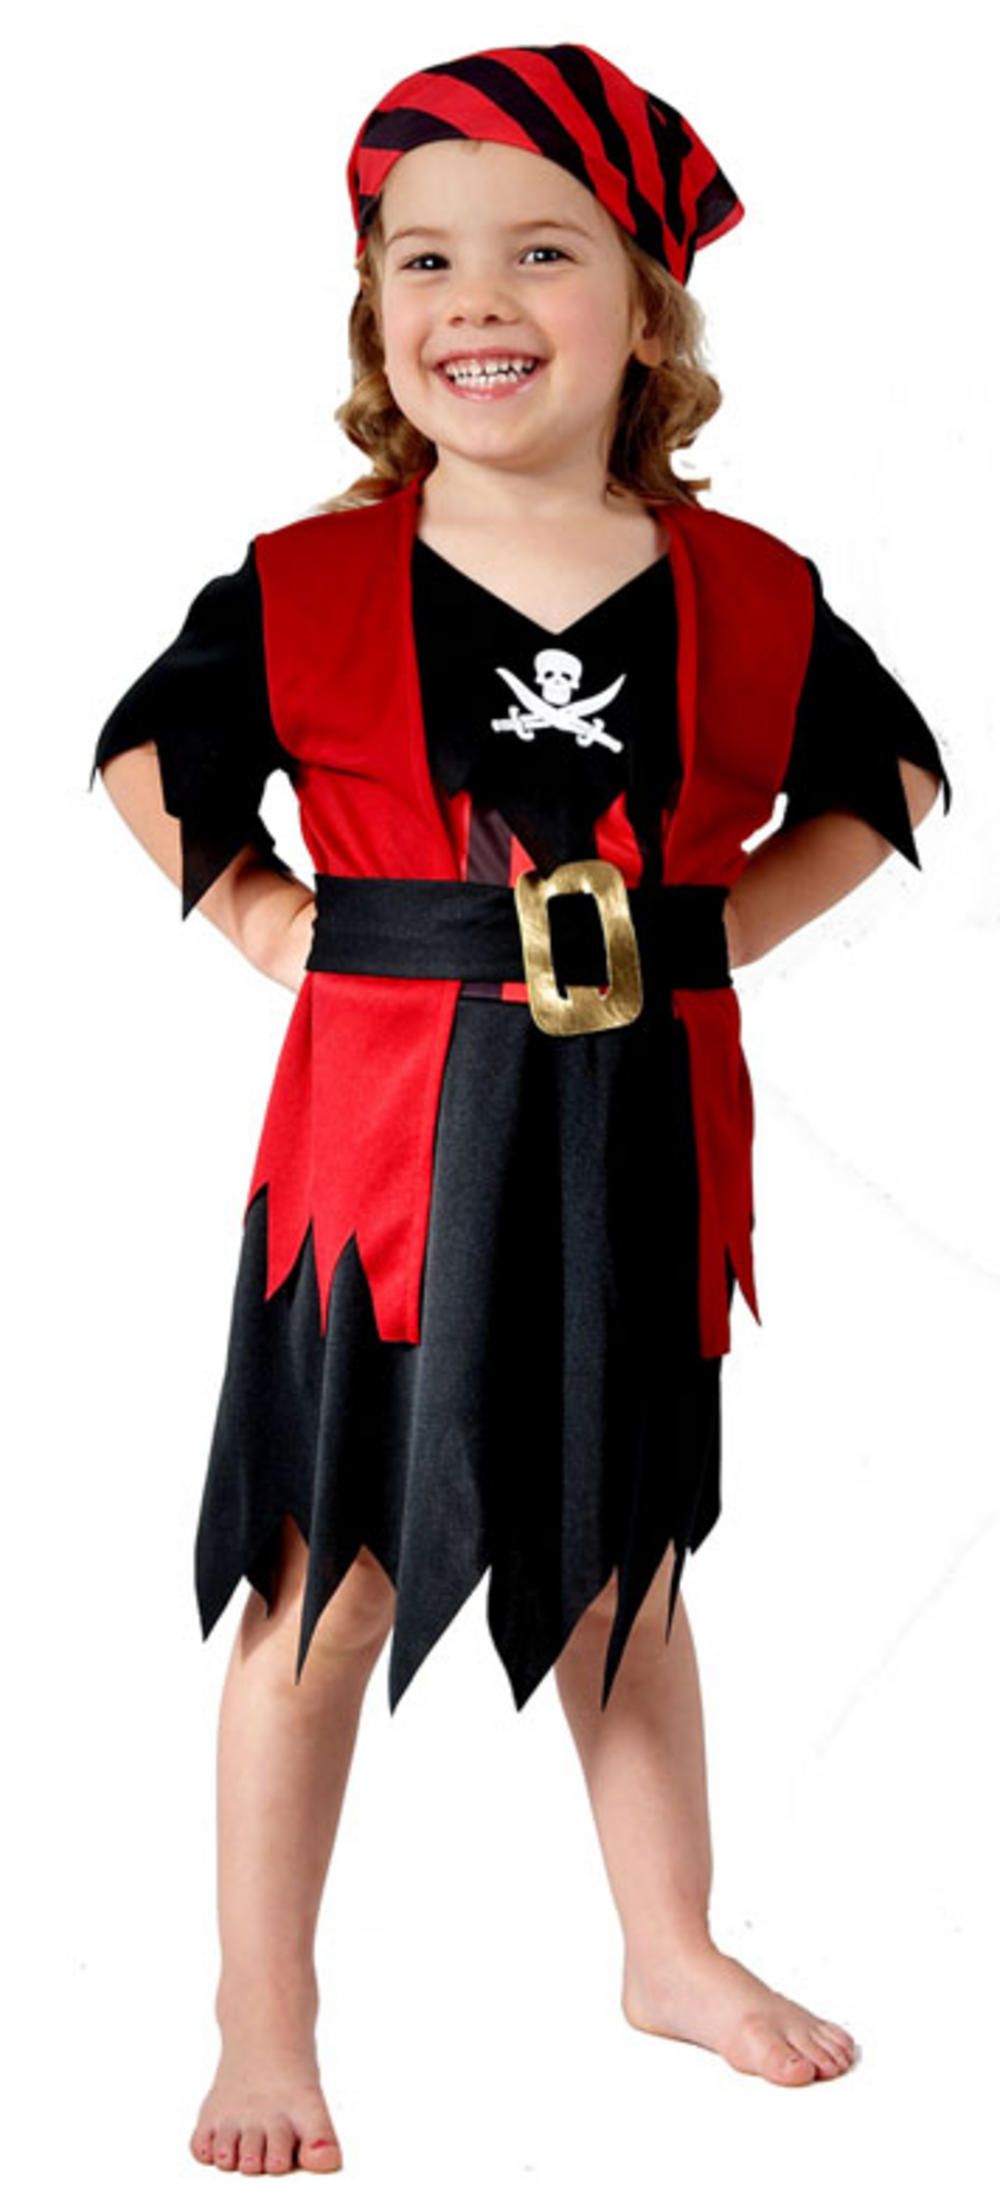 Fancy dress costume sizes can differ from standard clothing. Please check our size guide to ensure the best fit. Size Guide. Please Select the Size. Standard ; Who knew becoming a pirate for the day/night could be so easy! You won't be walking the plank when you discover our Pirate Kit, a boisterous buccaneers gold treasure of finds!.